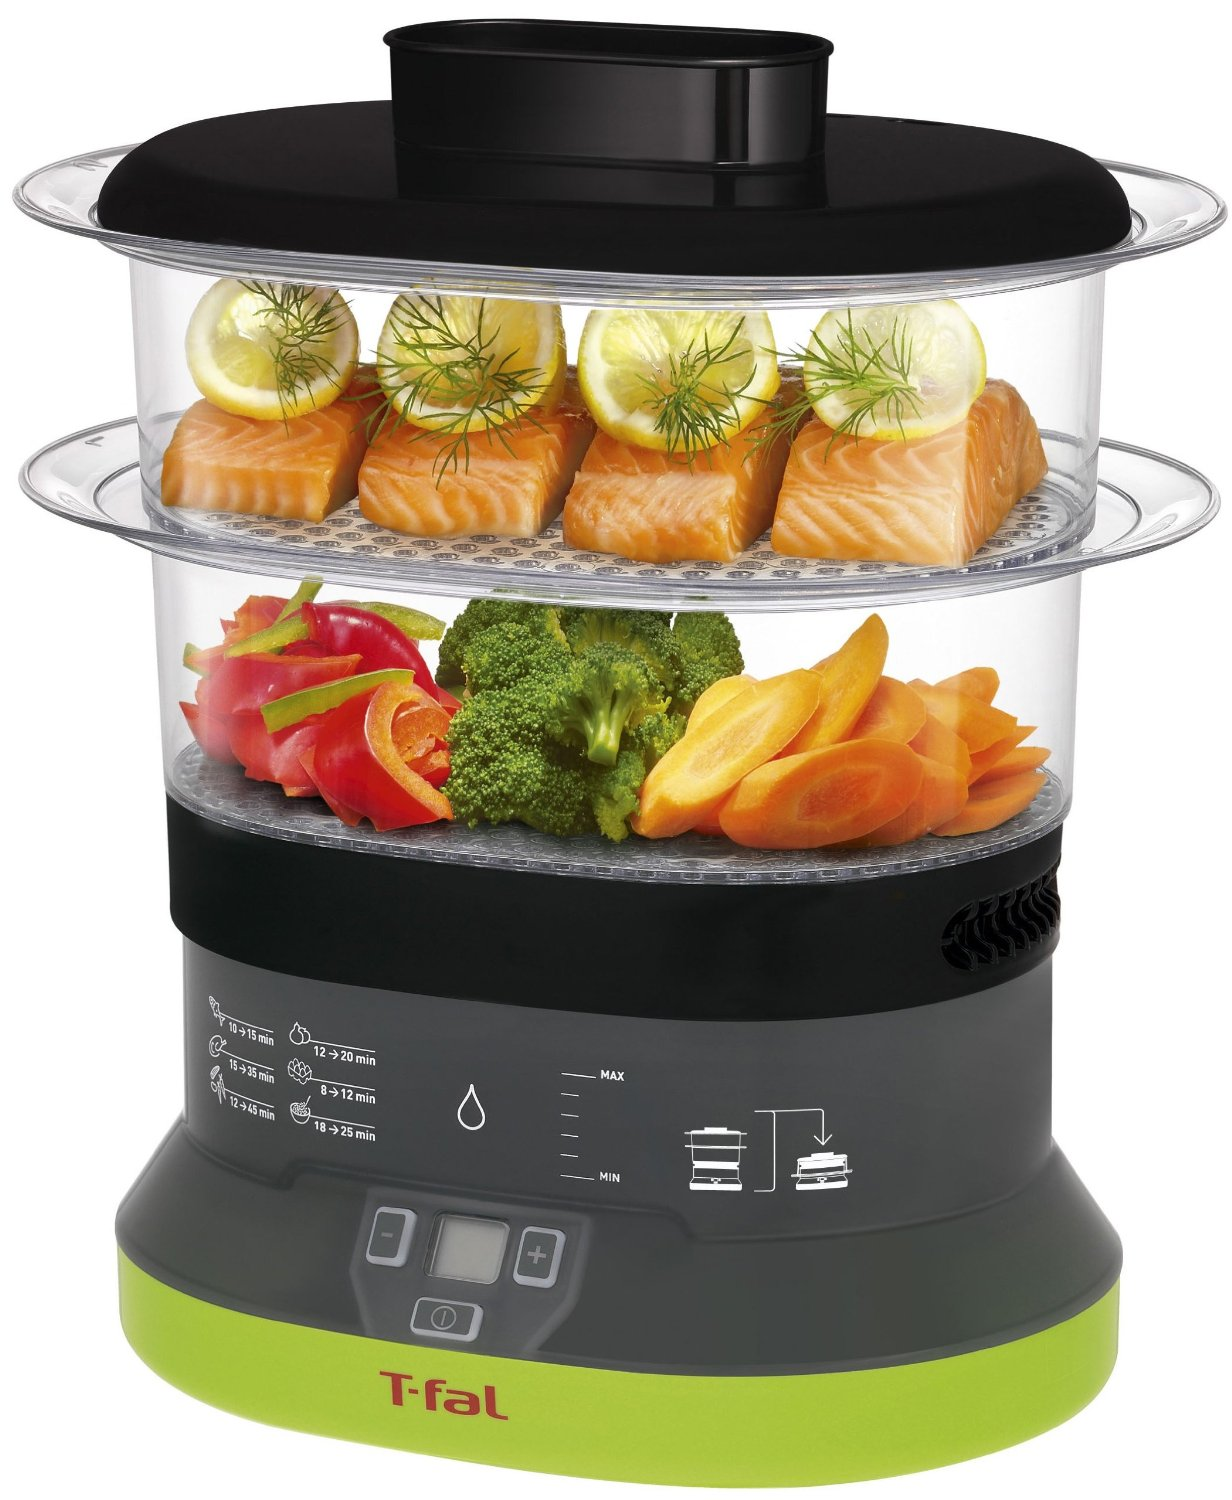 Best Compact Food Steamer